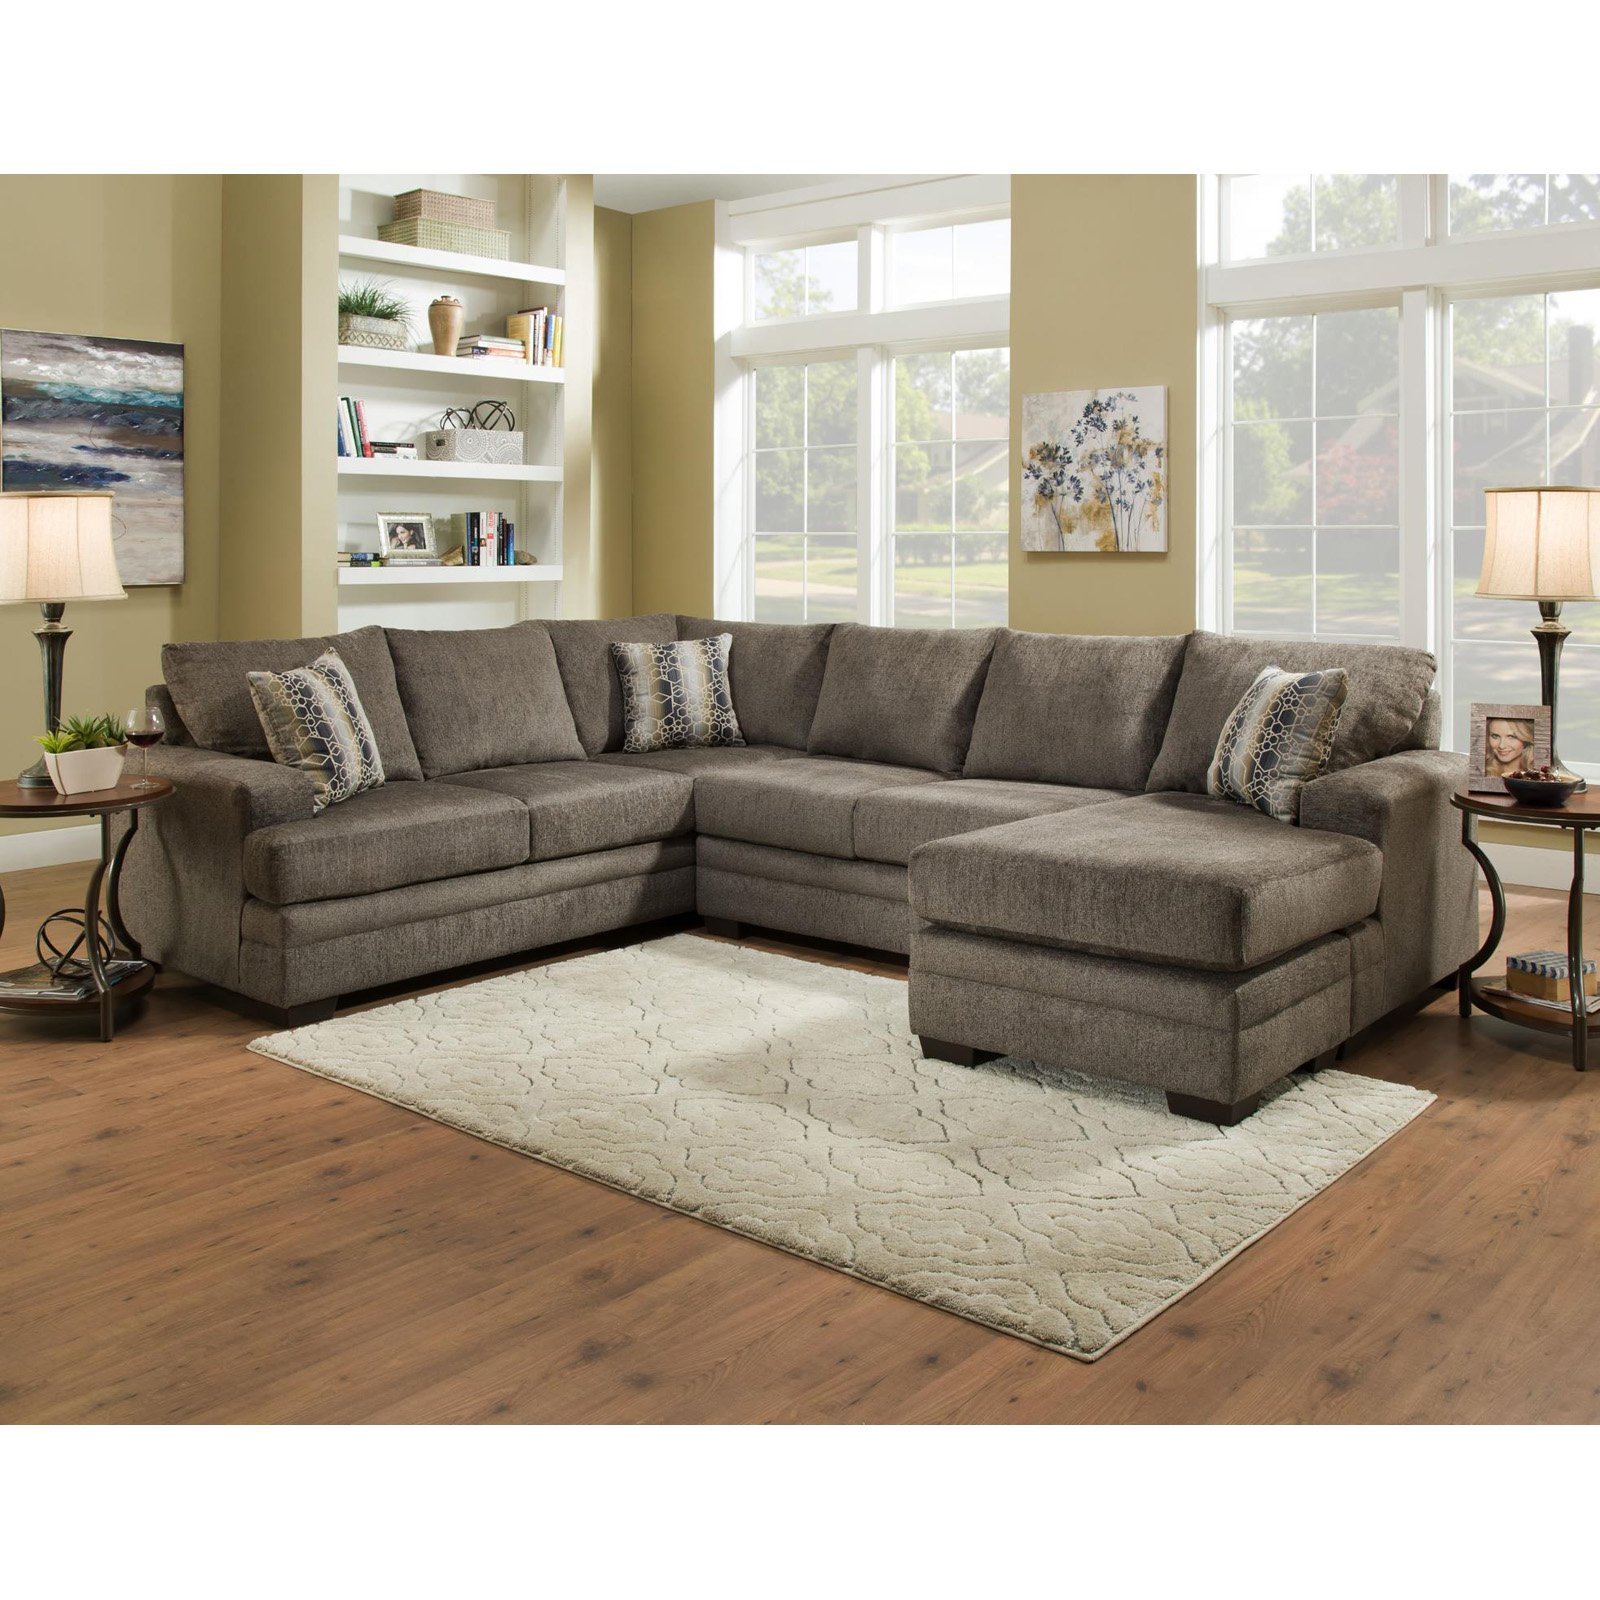 Chelsea Home Furniture Campbell 3 Piece U Shaped Sectional Sofa